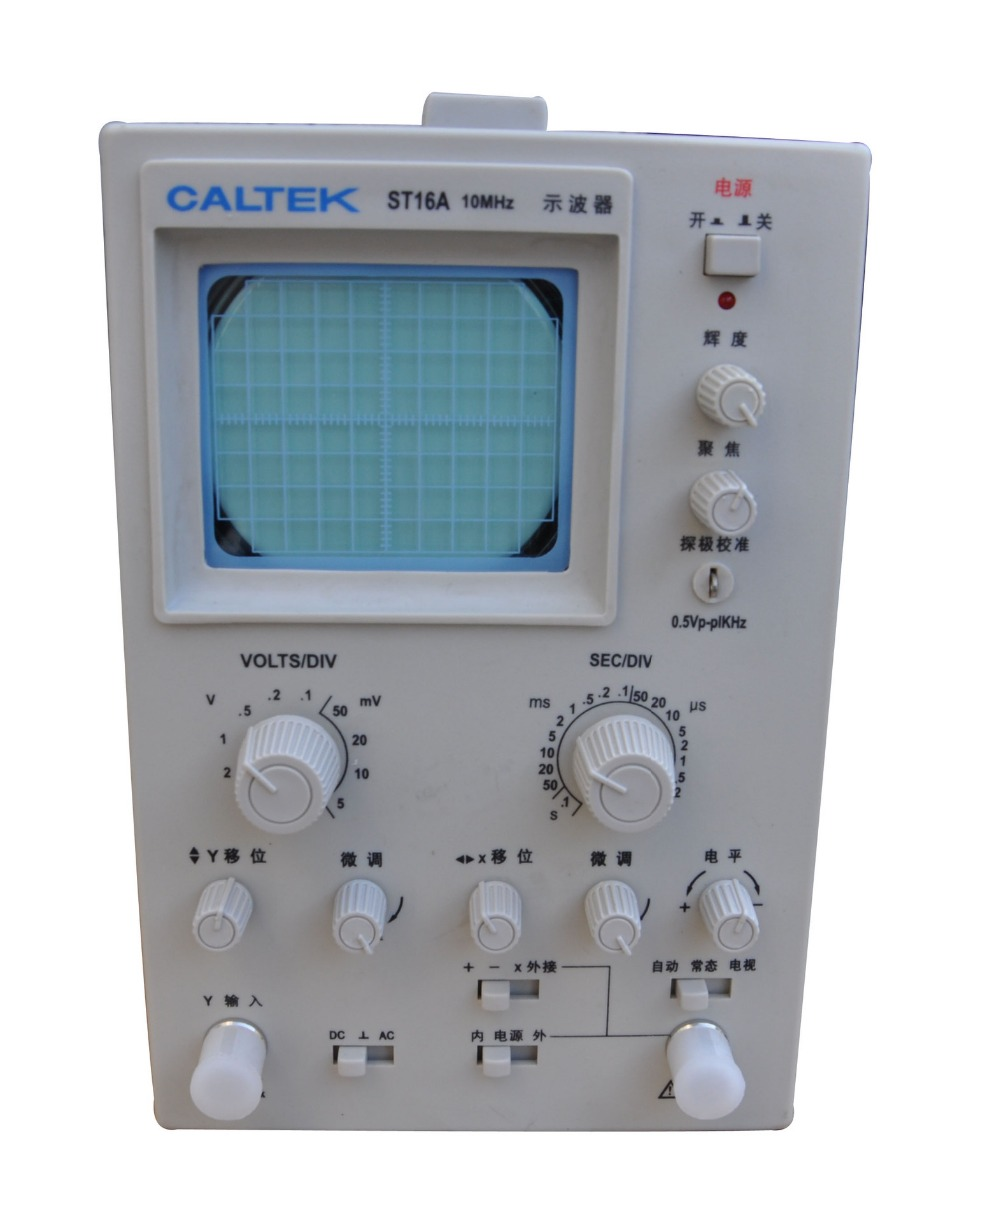 Fast arrival Caltek ST16A small single-channel <font><b>oscilloscope</b></font> <font><b>10MHz</b></font> image